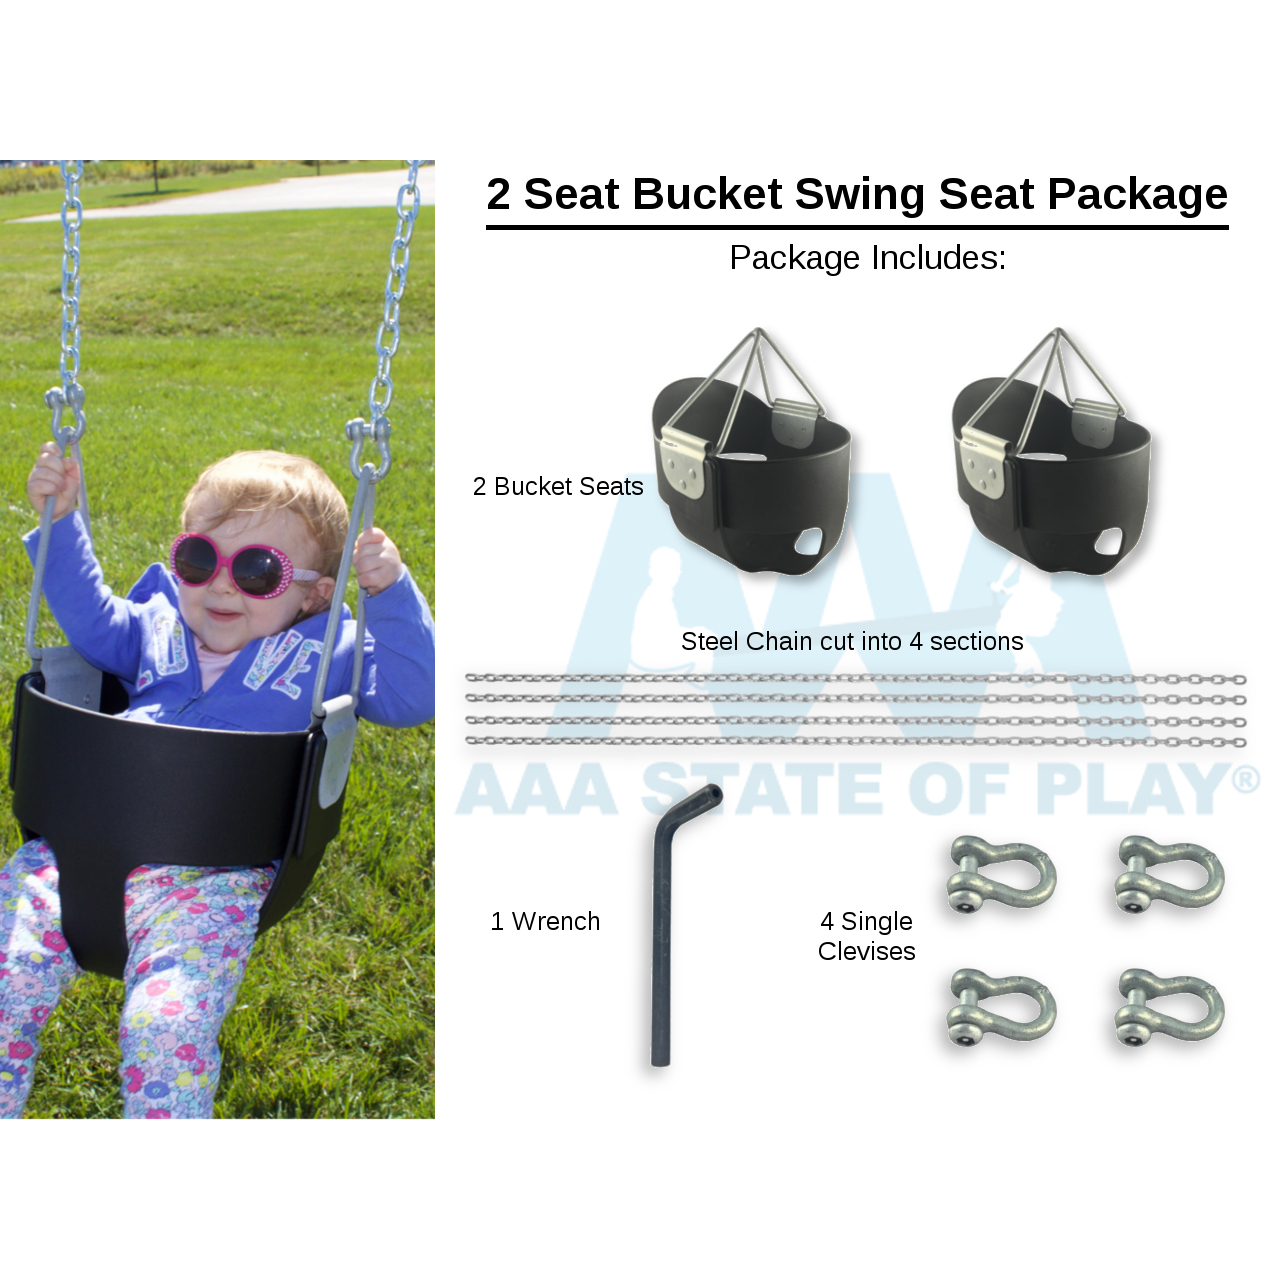 2 Seat Bucket Swing Seat Package Includes Bucket Seats Chain Connectors Tool 2 Top Rail Heights